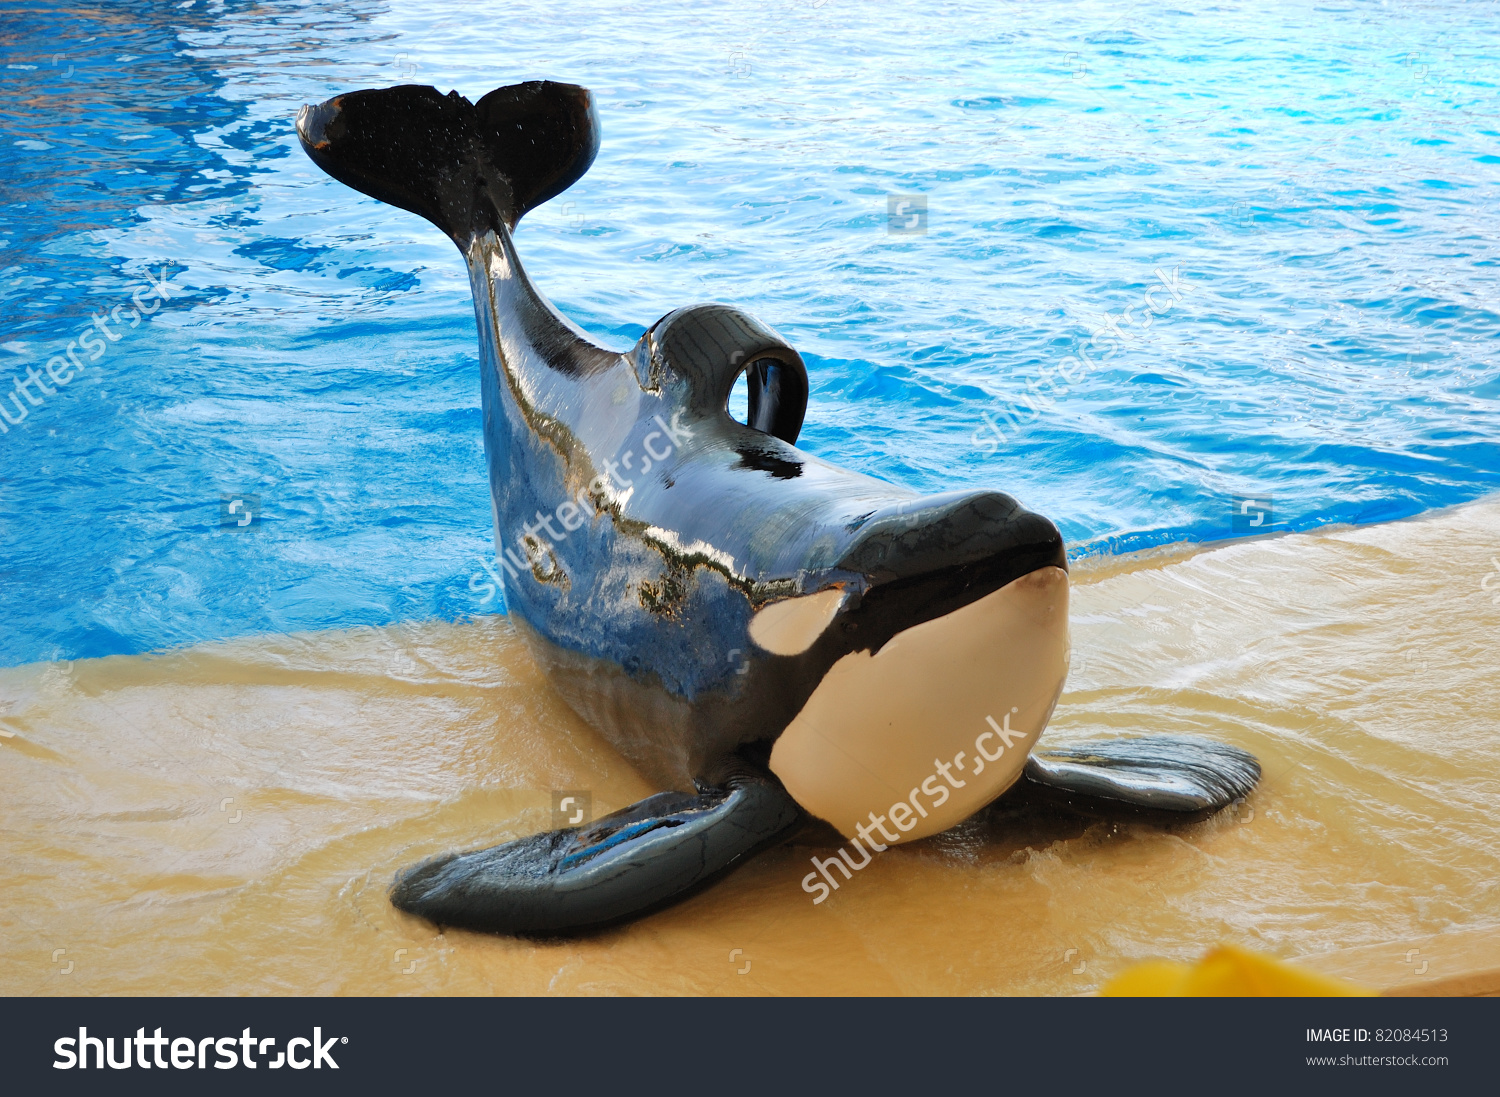 The Orcas Show In Loro Parque, Tenerife Island, Spain Stock Photo.